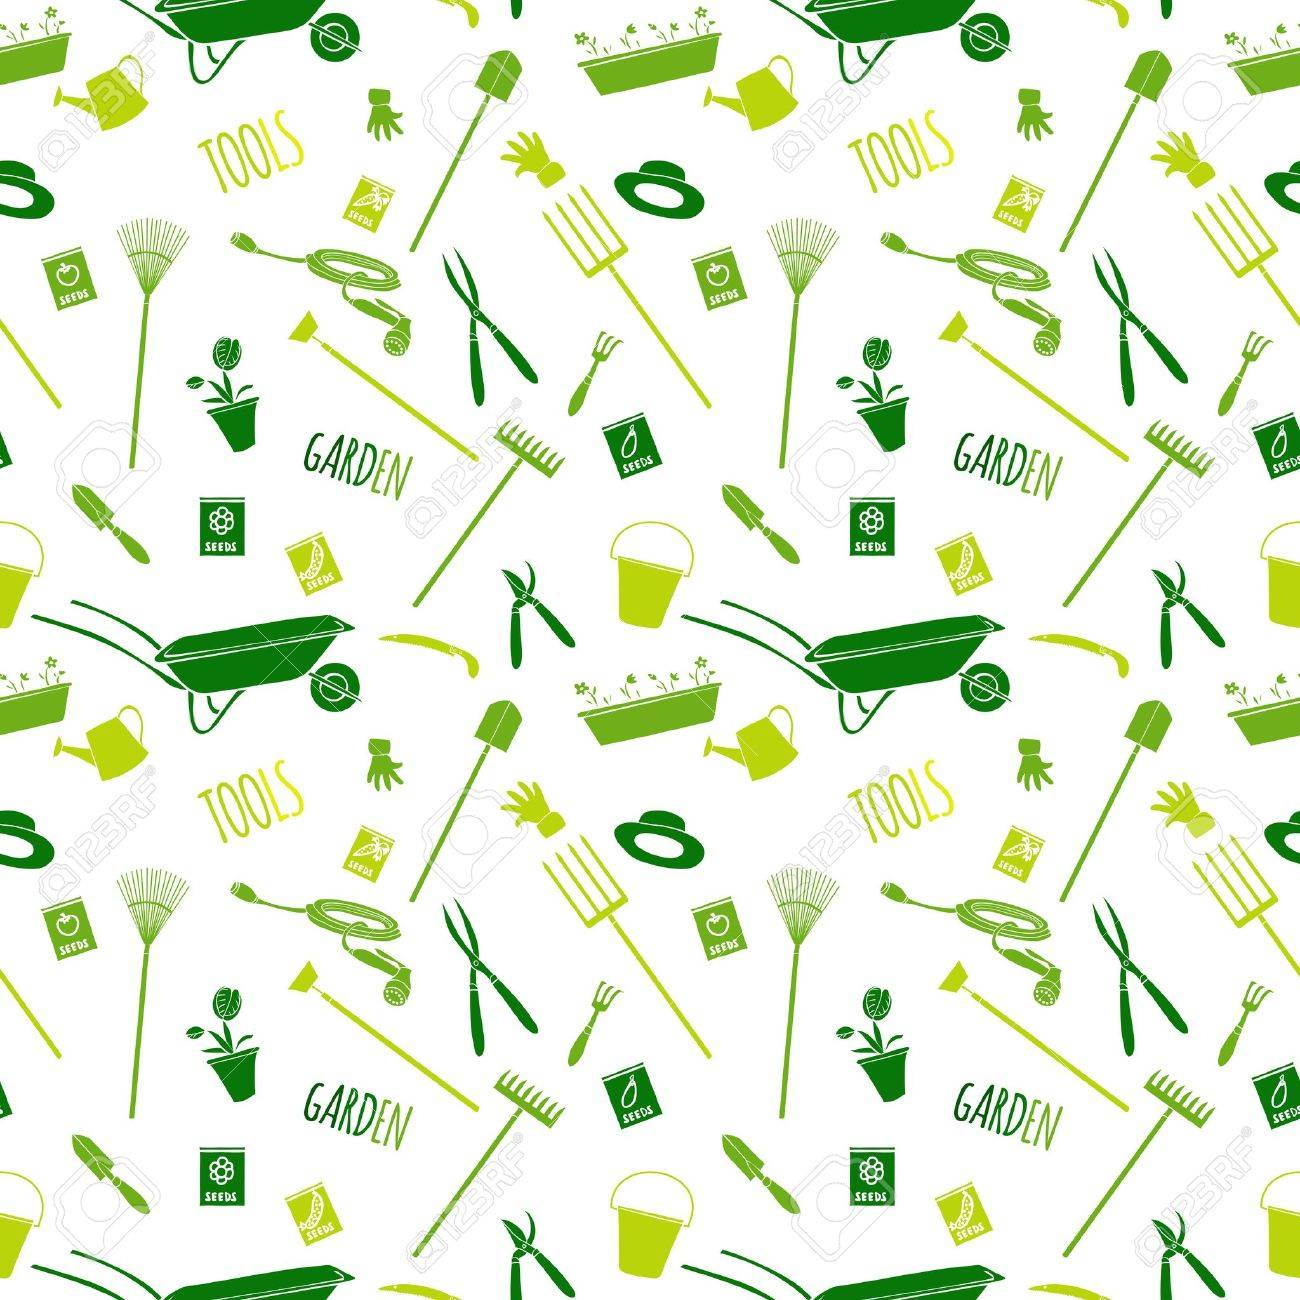 Decorative Garden Tools Seamless Wallpaper Green On White Converted ...